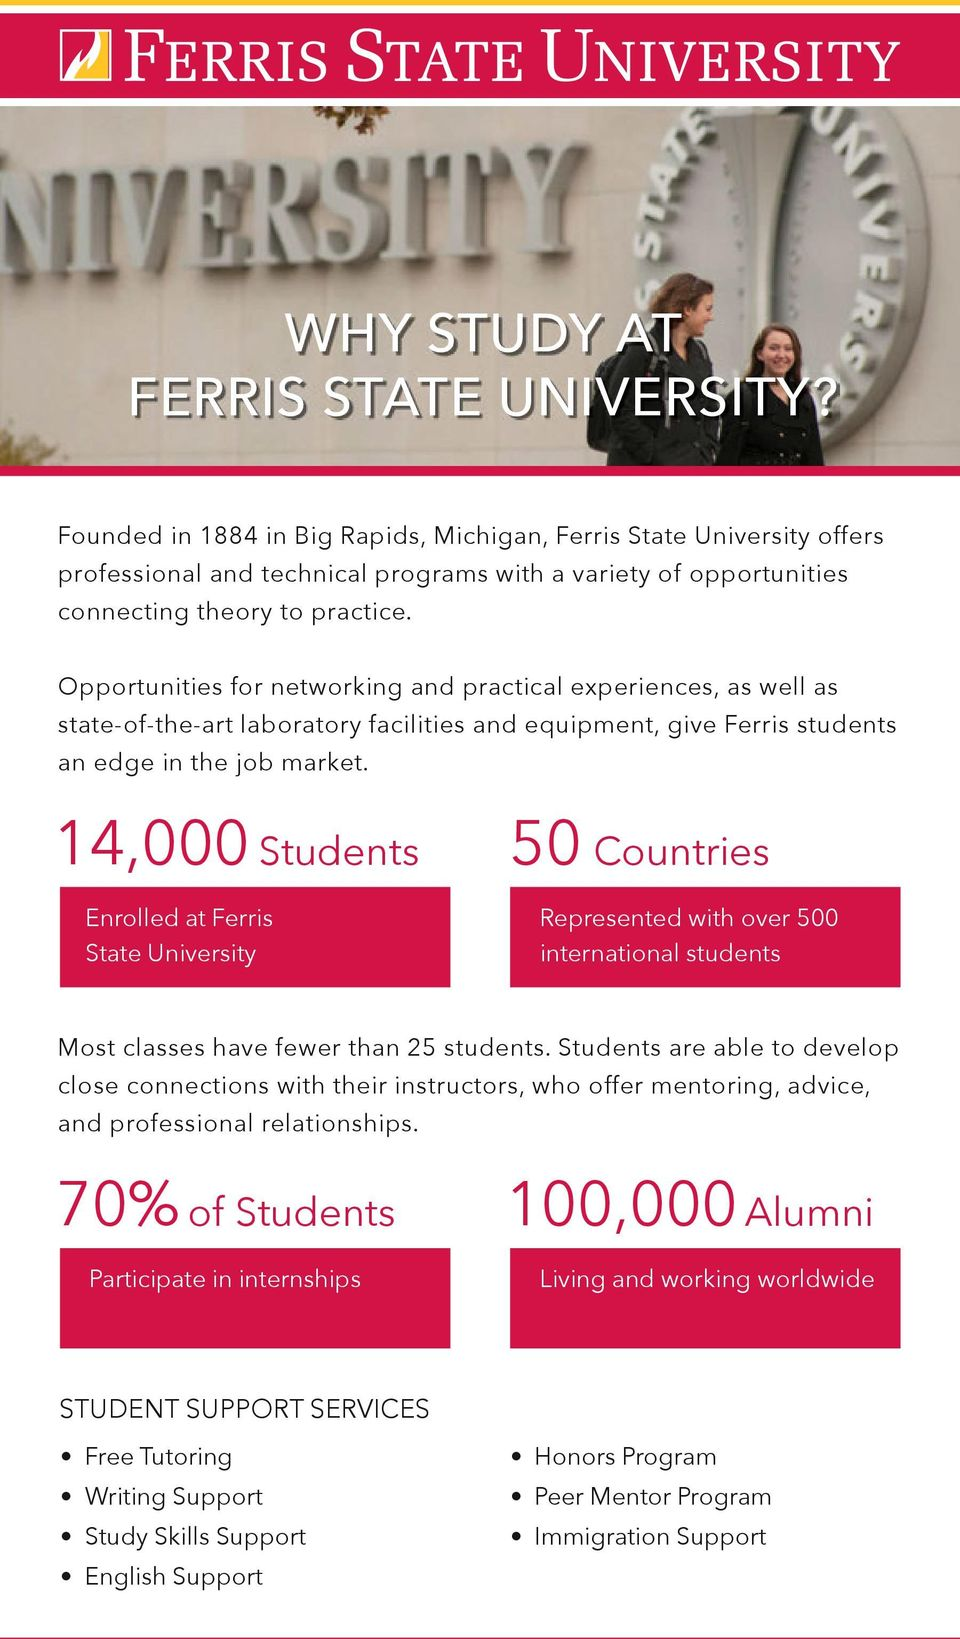 Opportunities for networking and practical experiences, as well as state-of-the-art laboratory facilities and equipment, give Ferris students an edge in the job market.